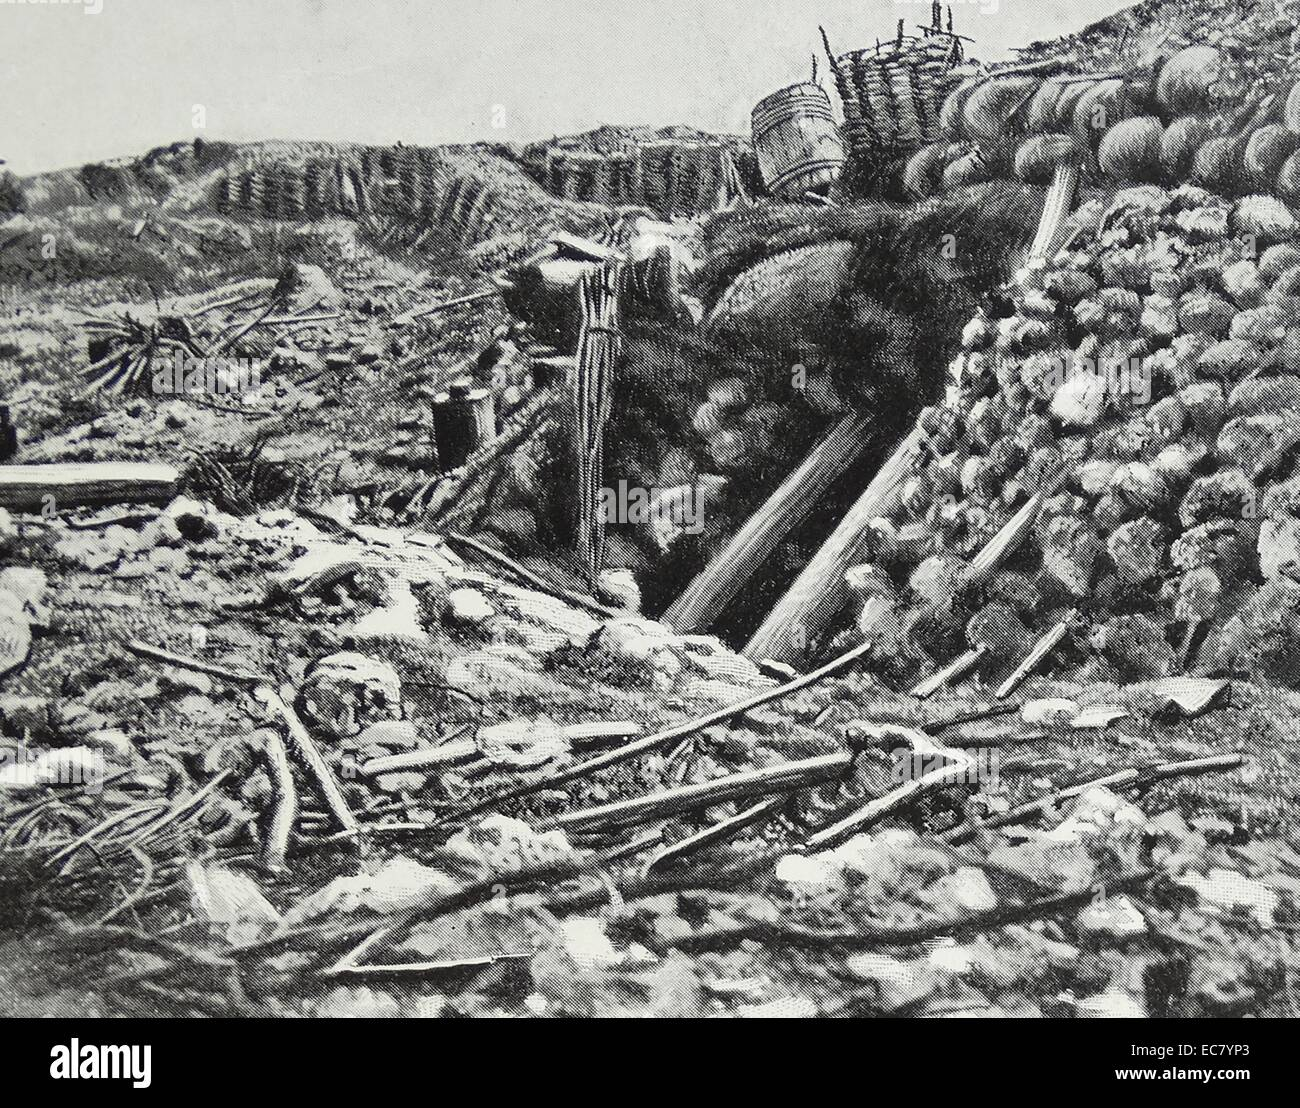 bunker at the Battle of the Great Redan during the Crimean War; fought between British forces against Russia on - Stock Image